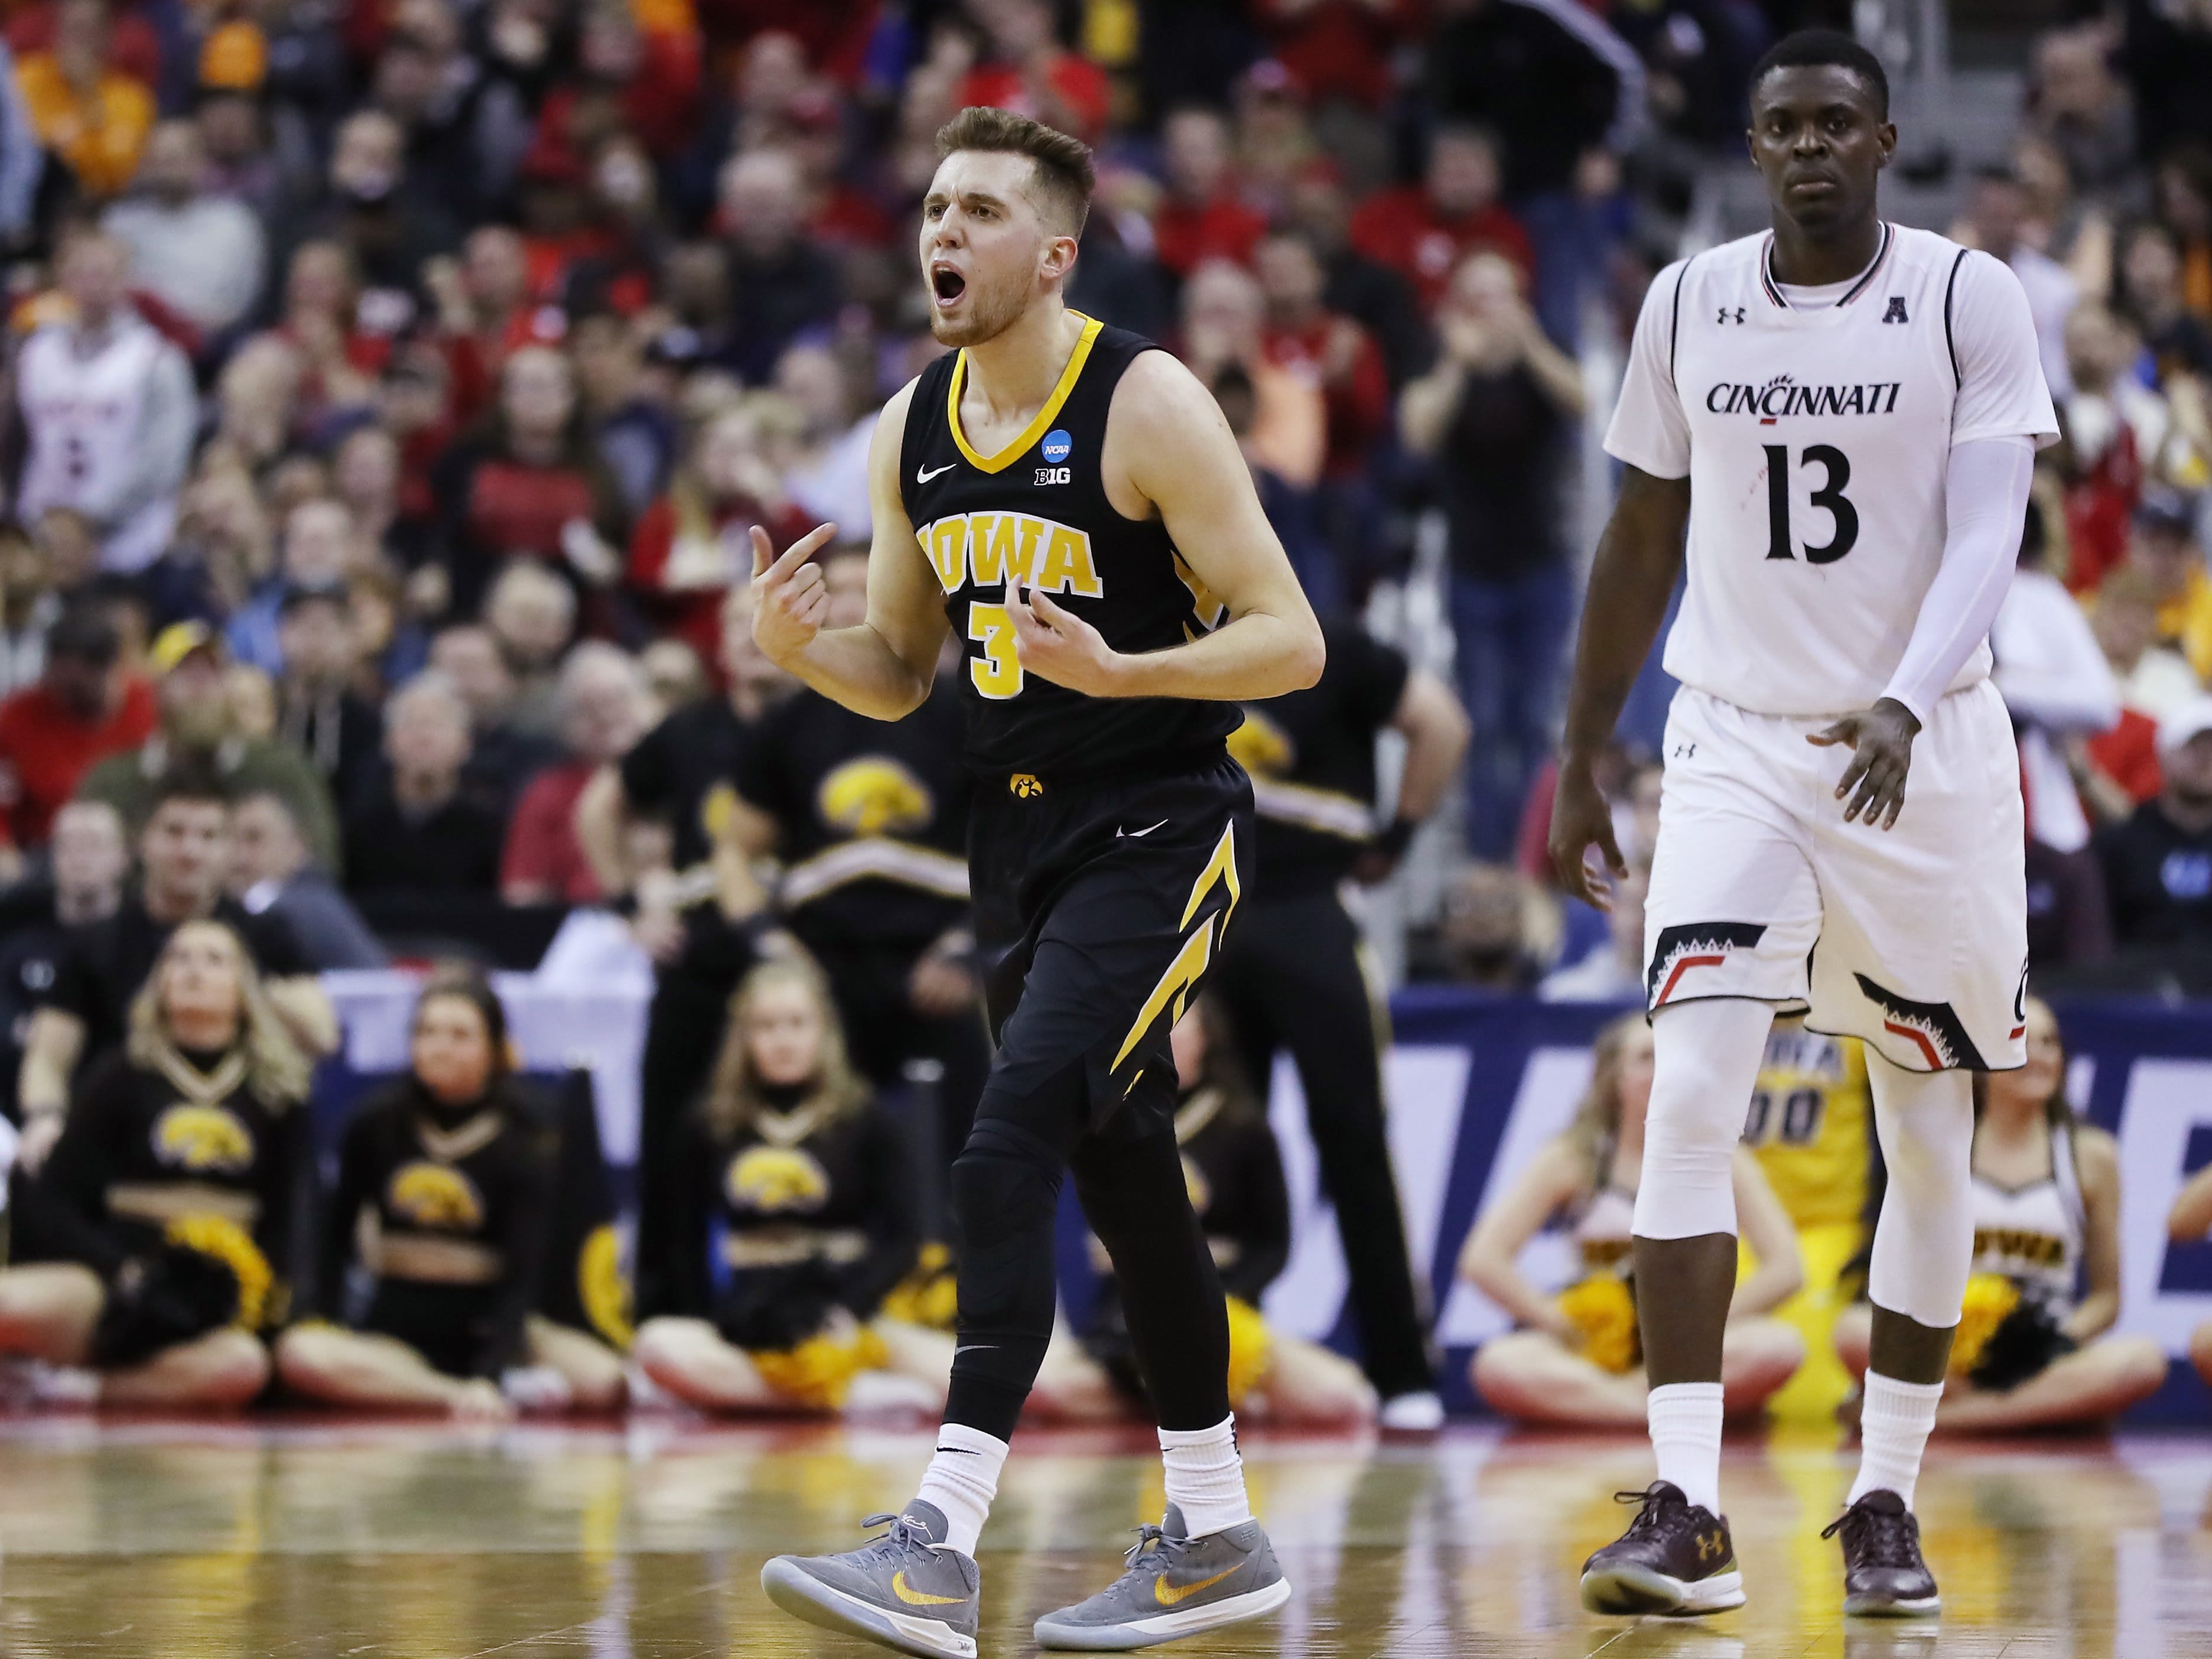 Jordan Bohannon celebrates late during Iowa's 79-72 win against Cincinnati, in which he scored all 13 of his points in the final 20:01.